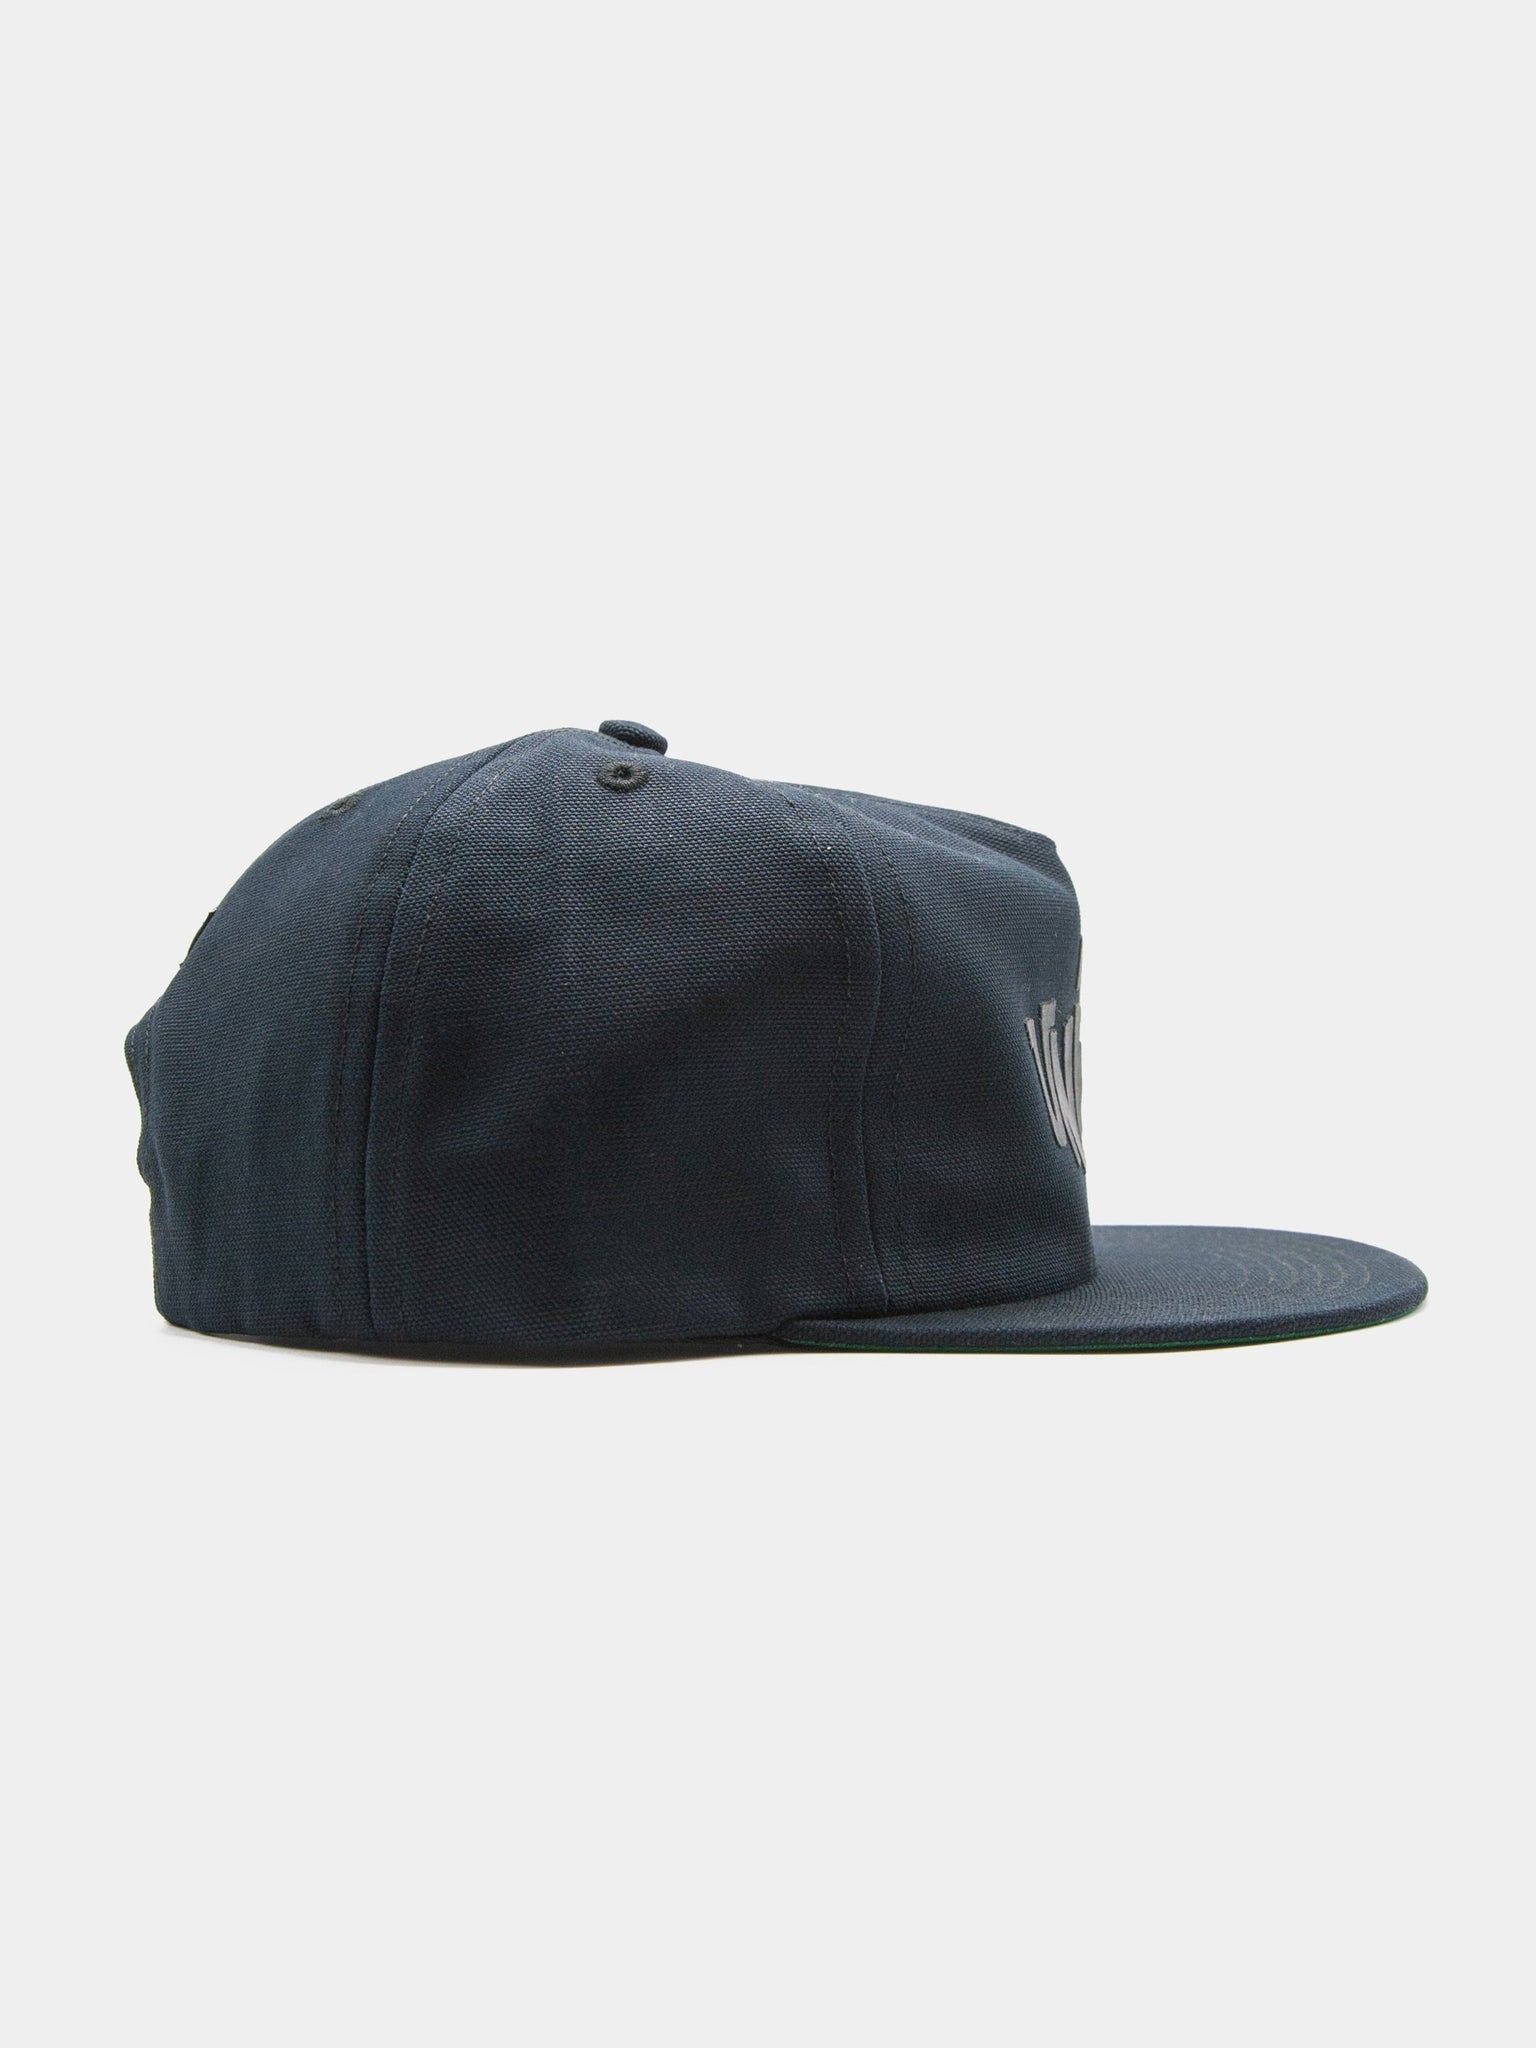 union-5-panel-unstructured-trucker